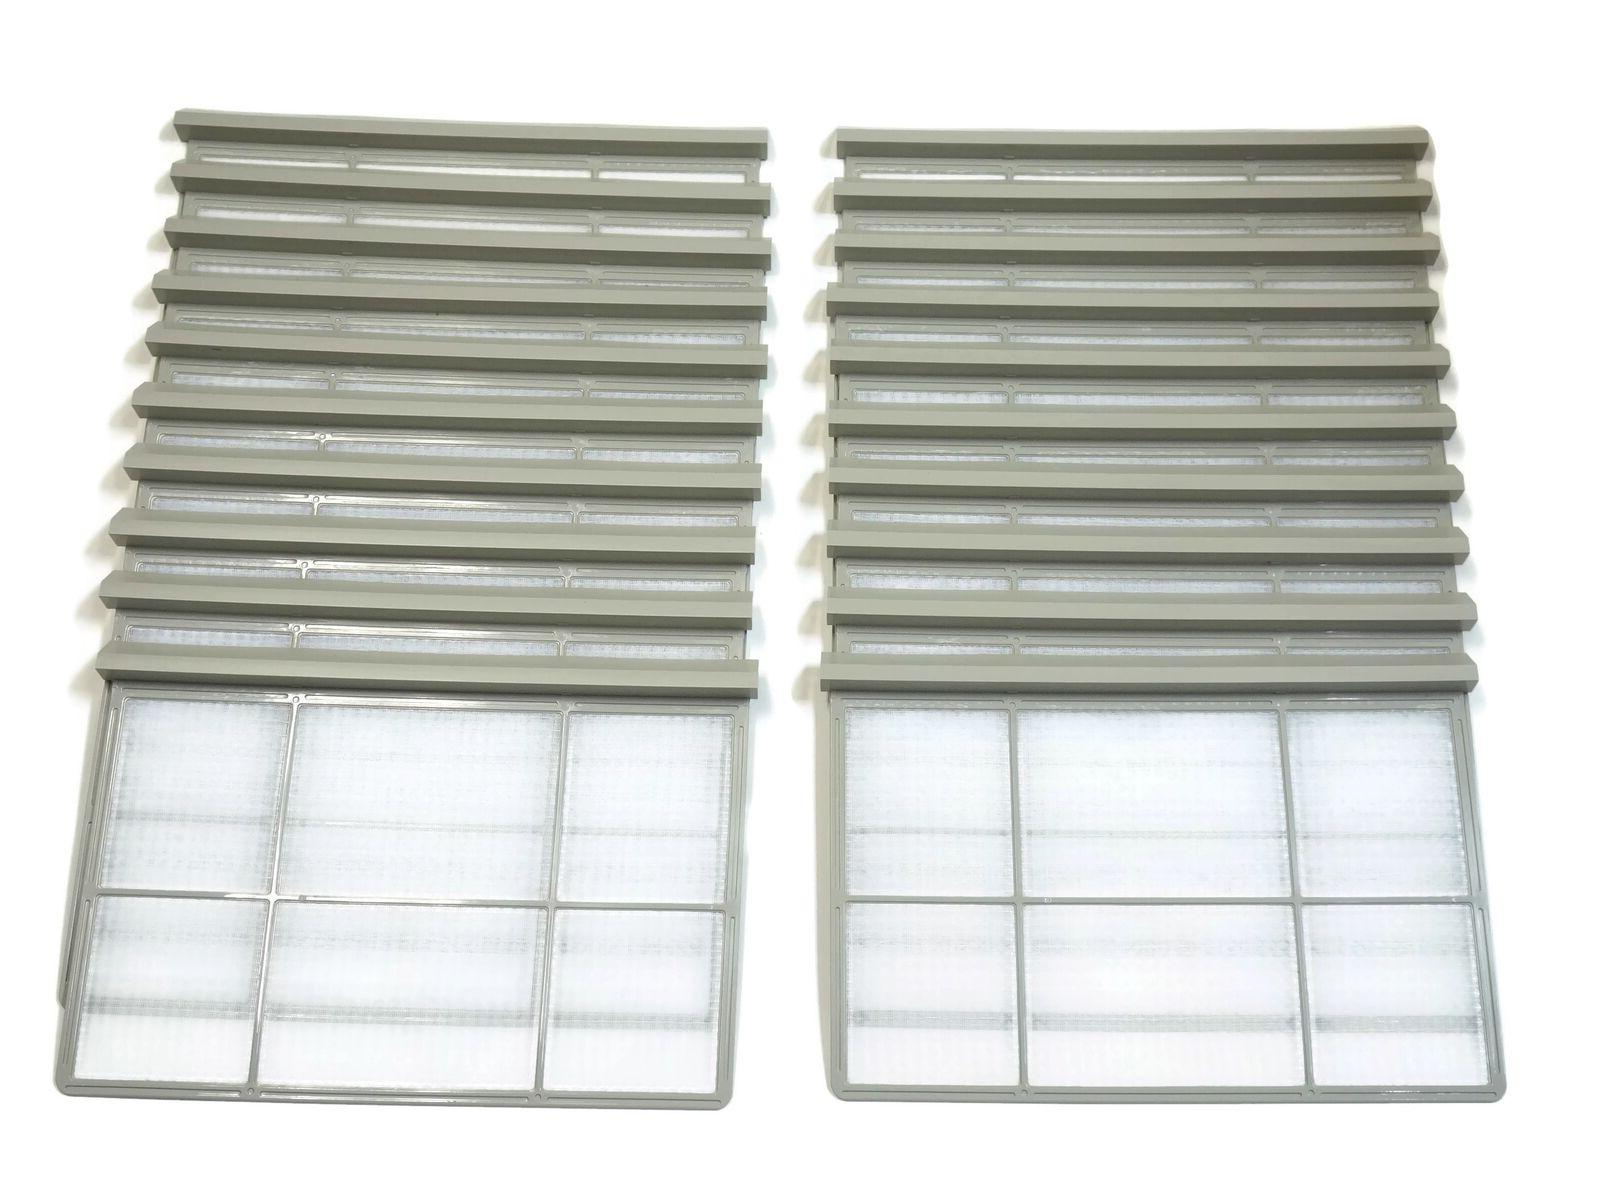 20 pack wp85x10008 room air conditioner filter